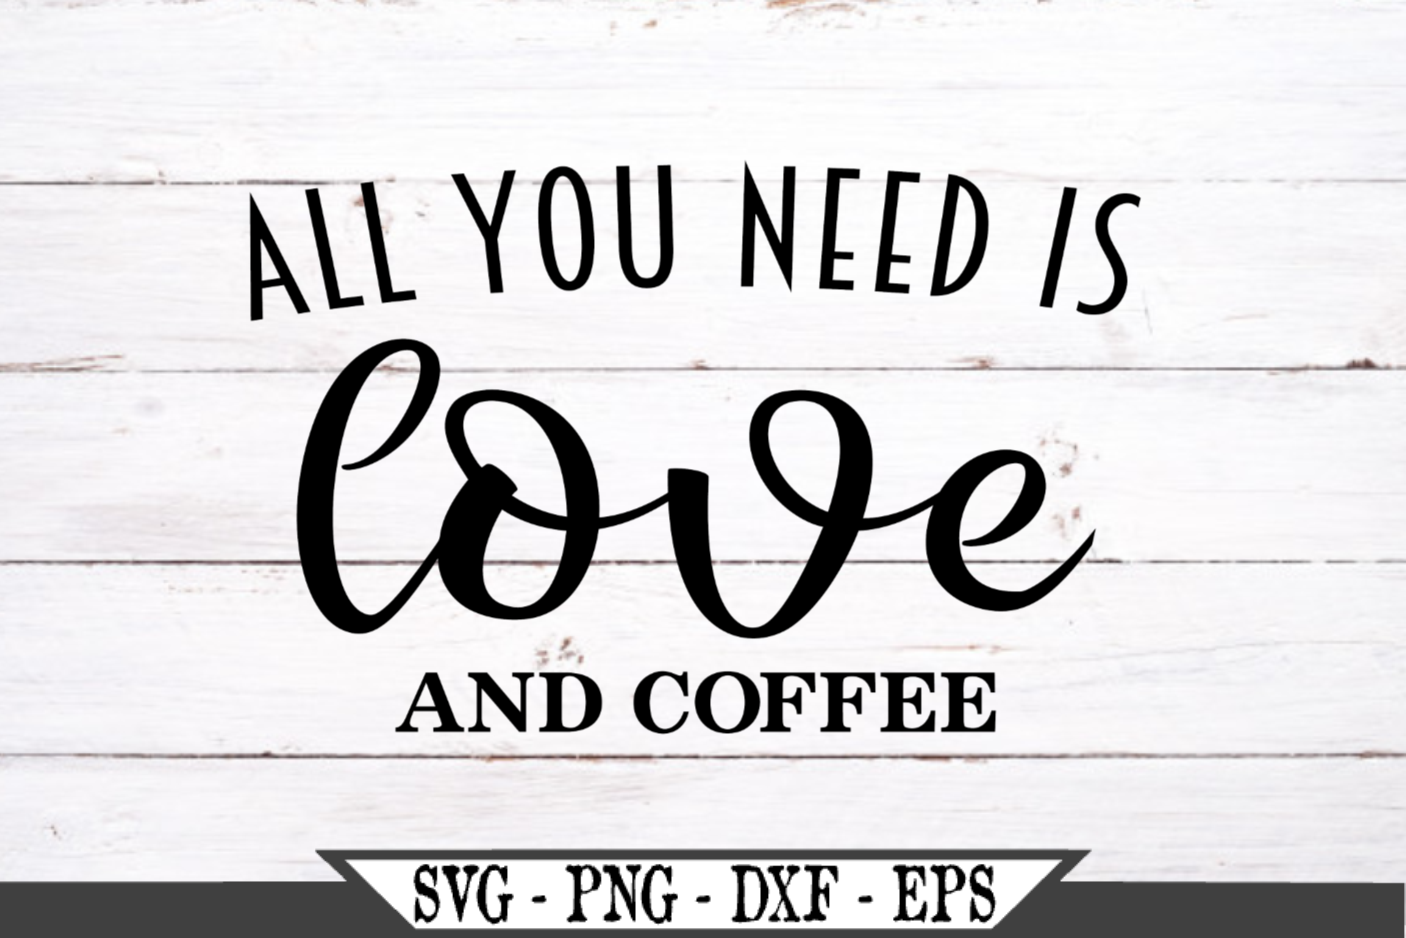 All You Need Is Love And Coffee SVG example image 2